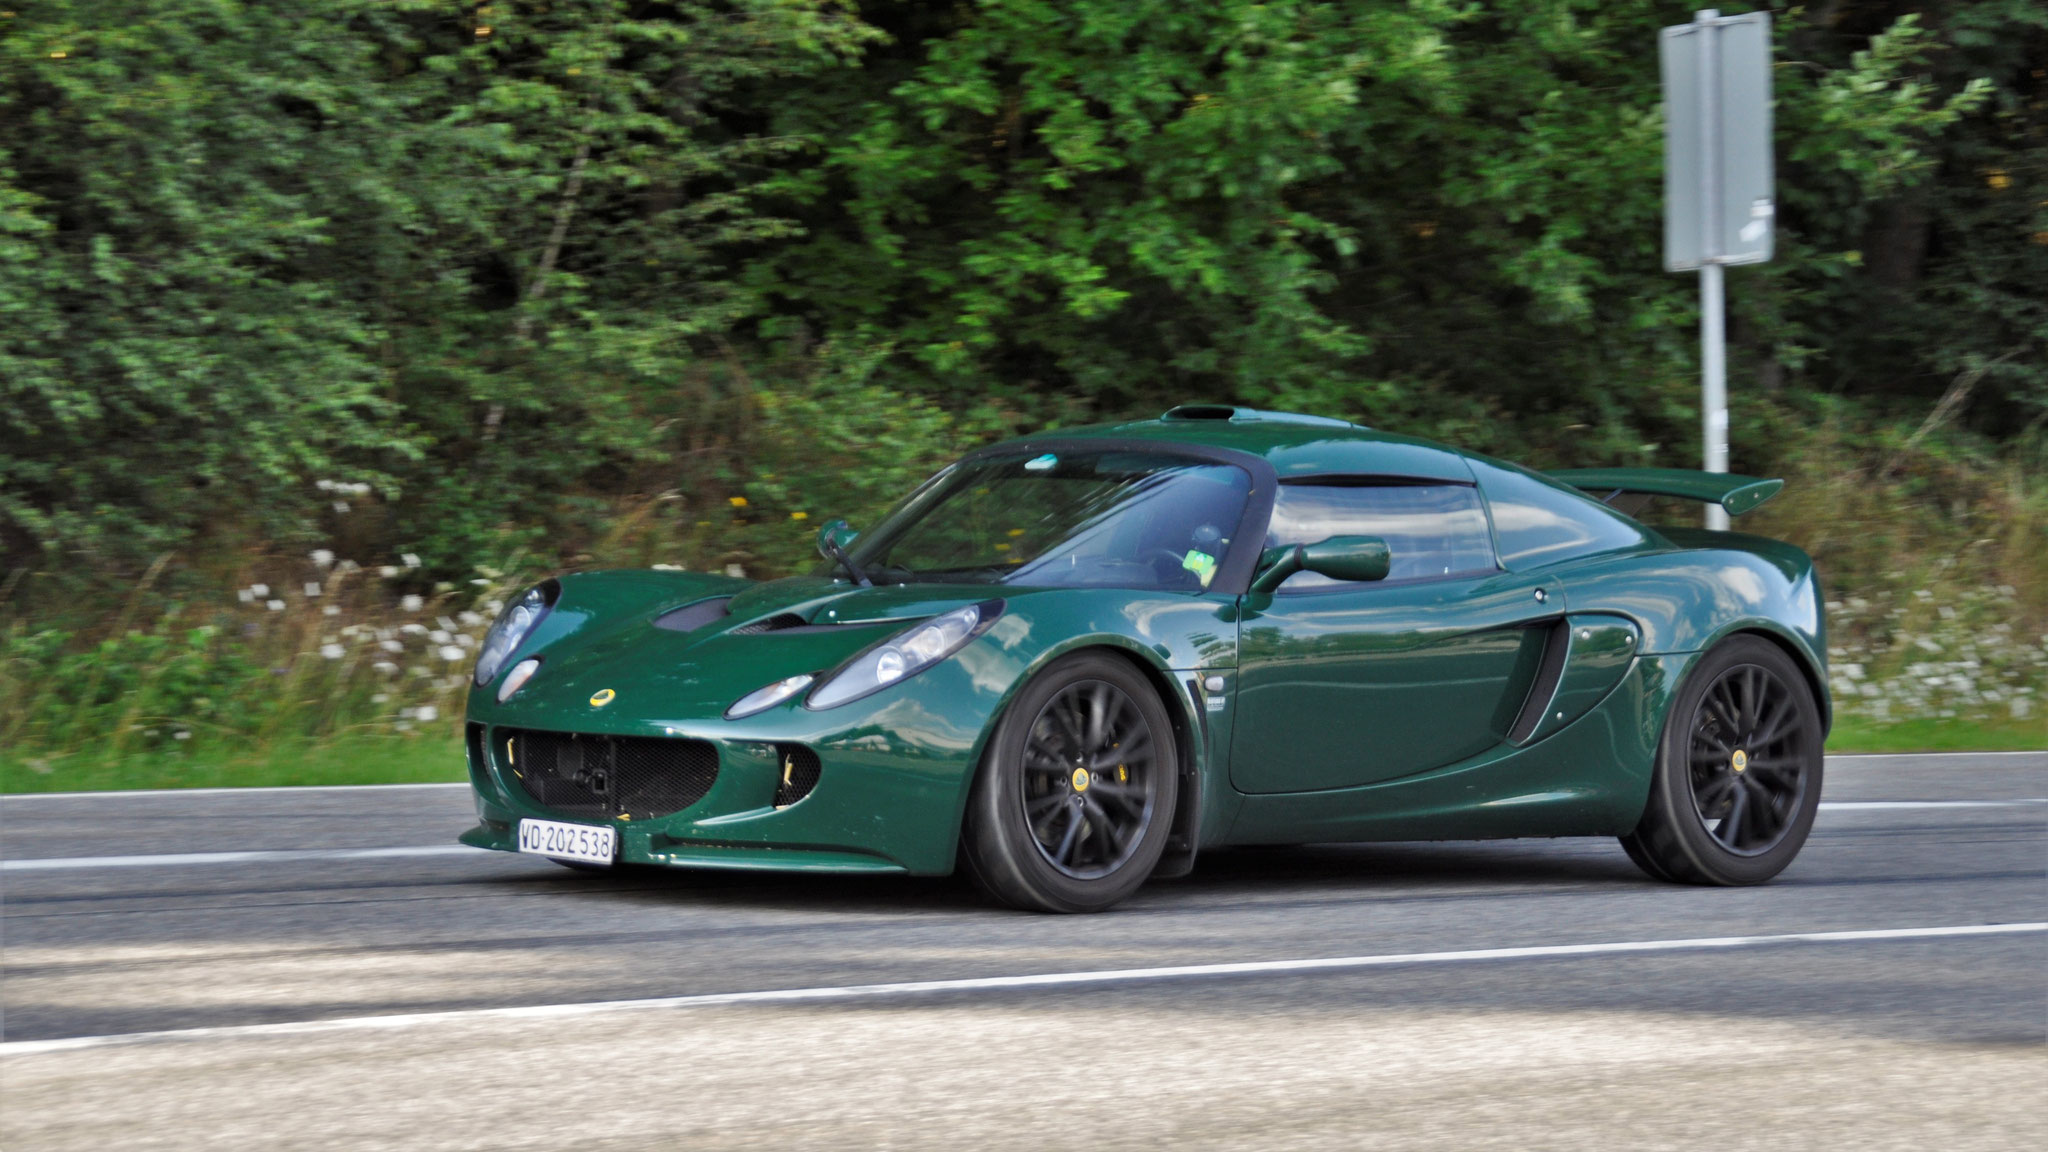 Lotus Elise S2 - VD-202538 (CH)